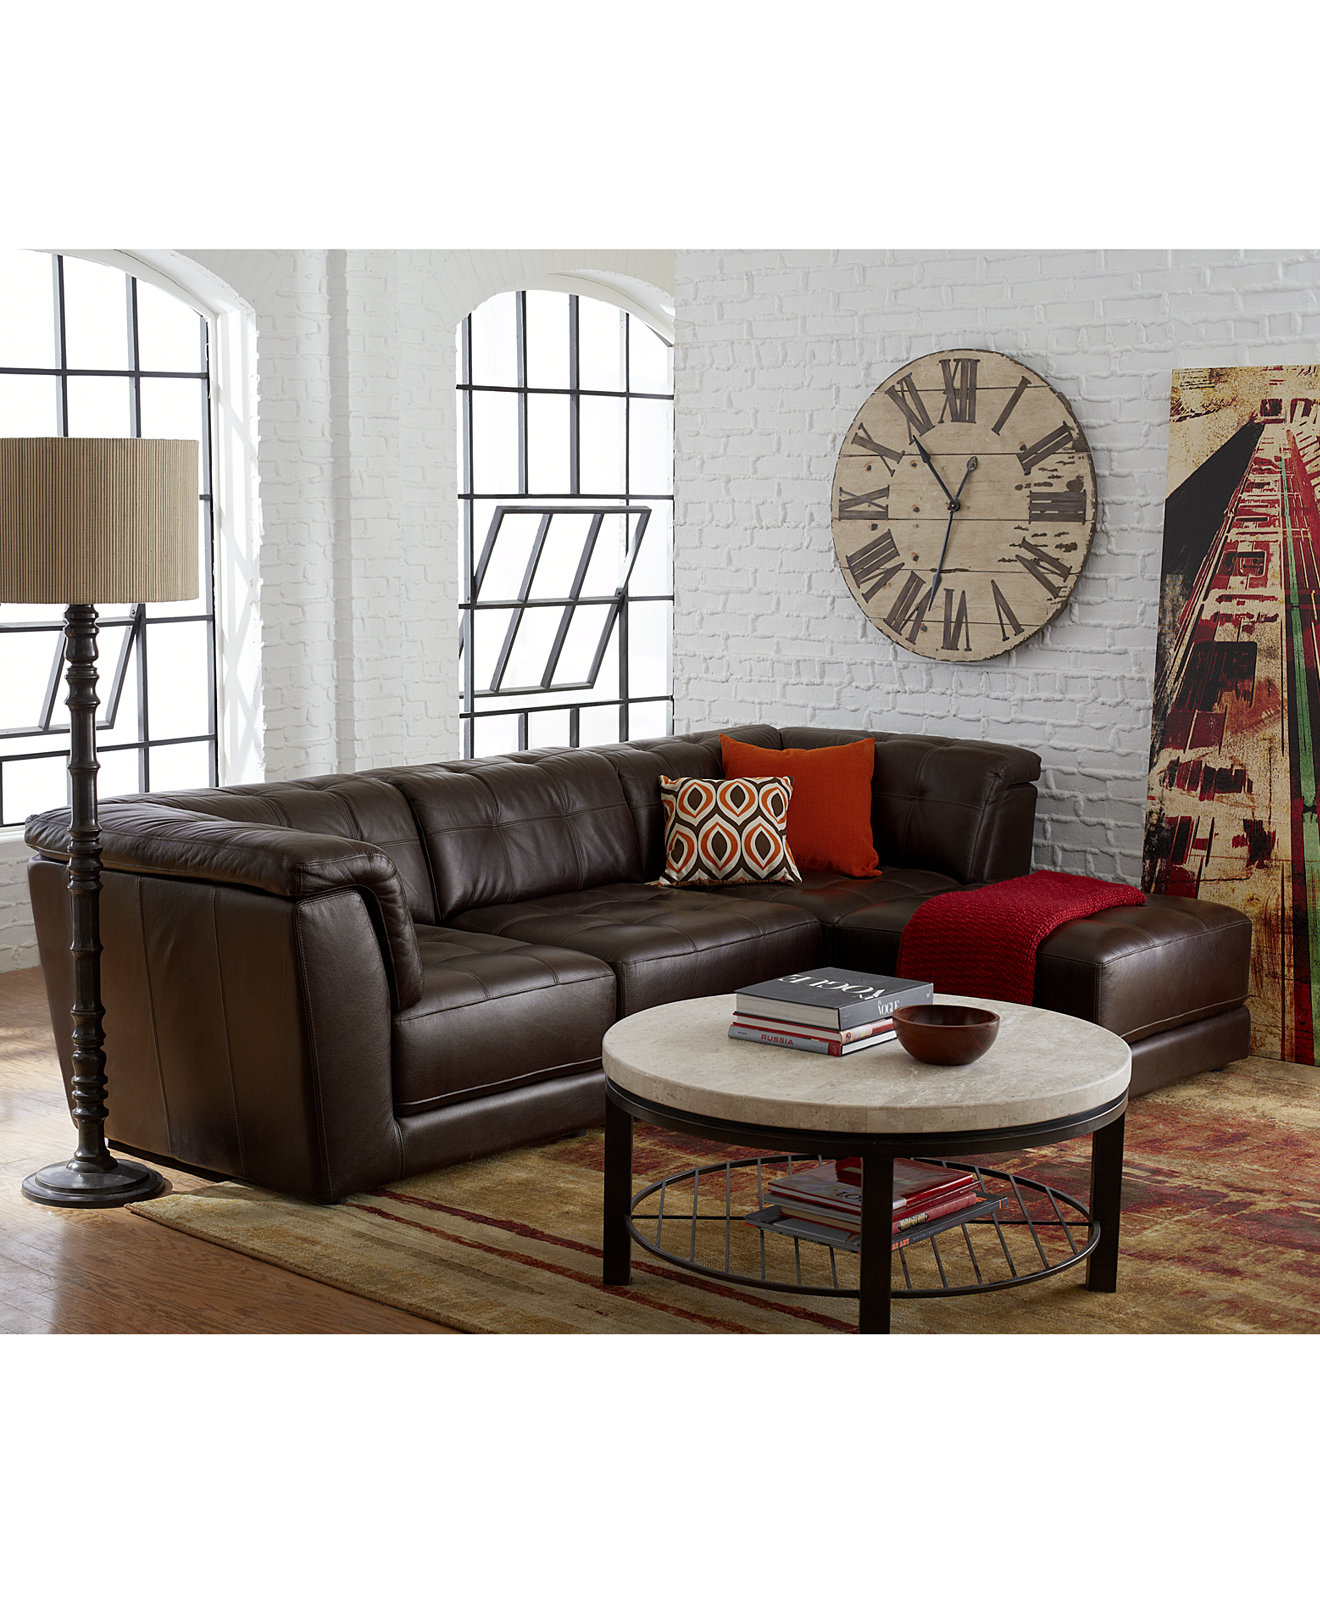 Leather living room furniture - Stacey Leather Modular Living Room Furniture Collection